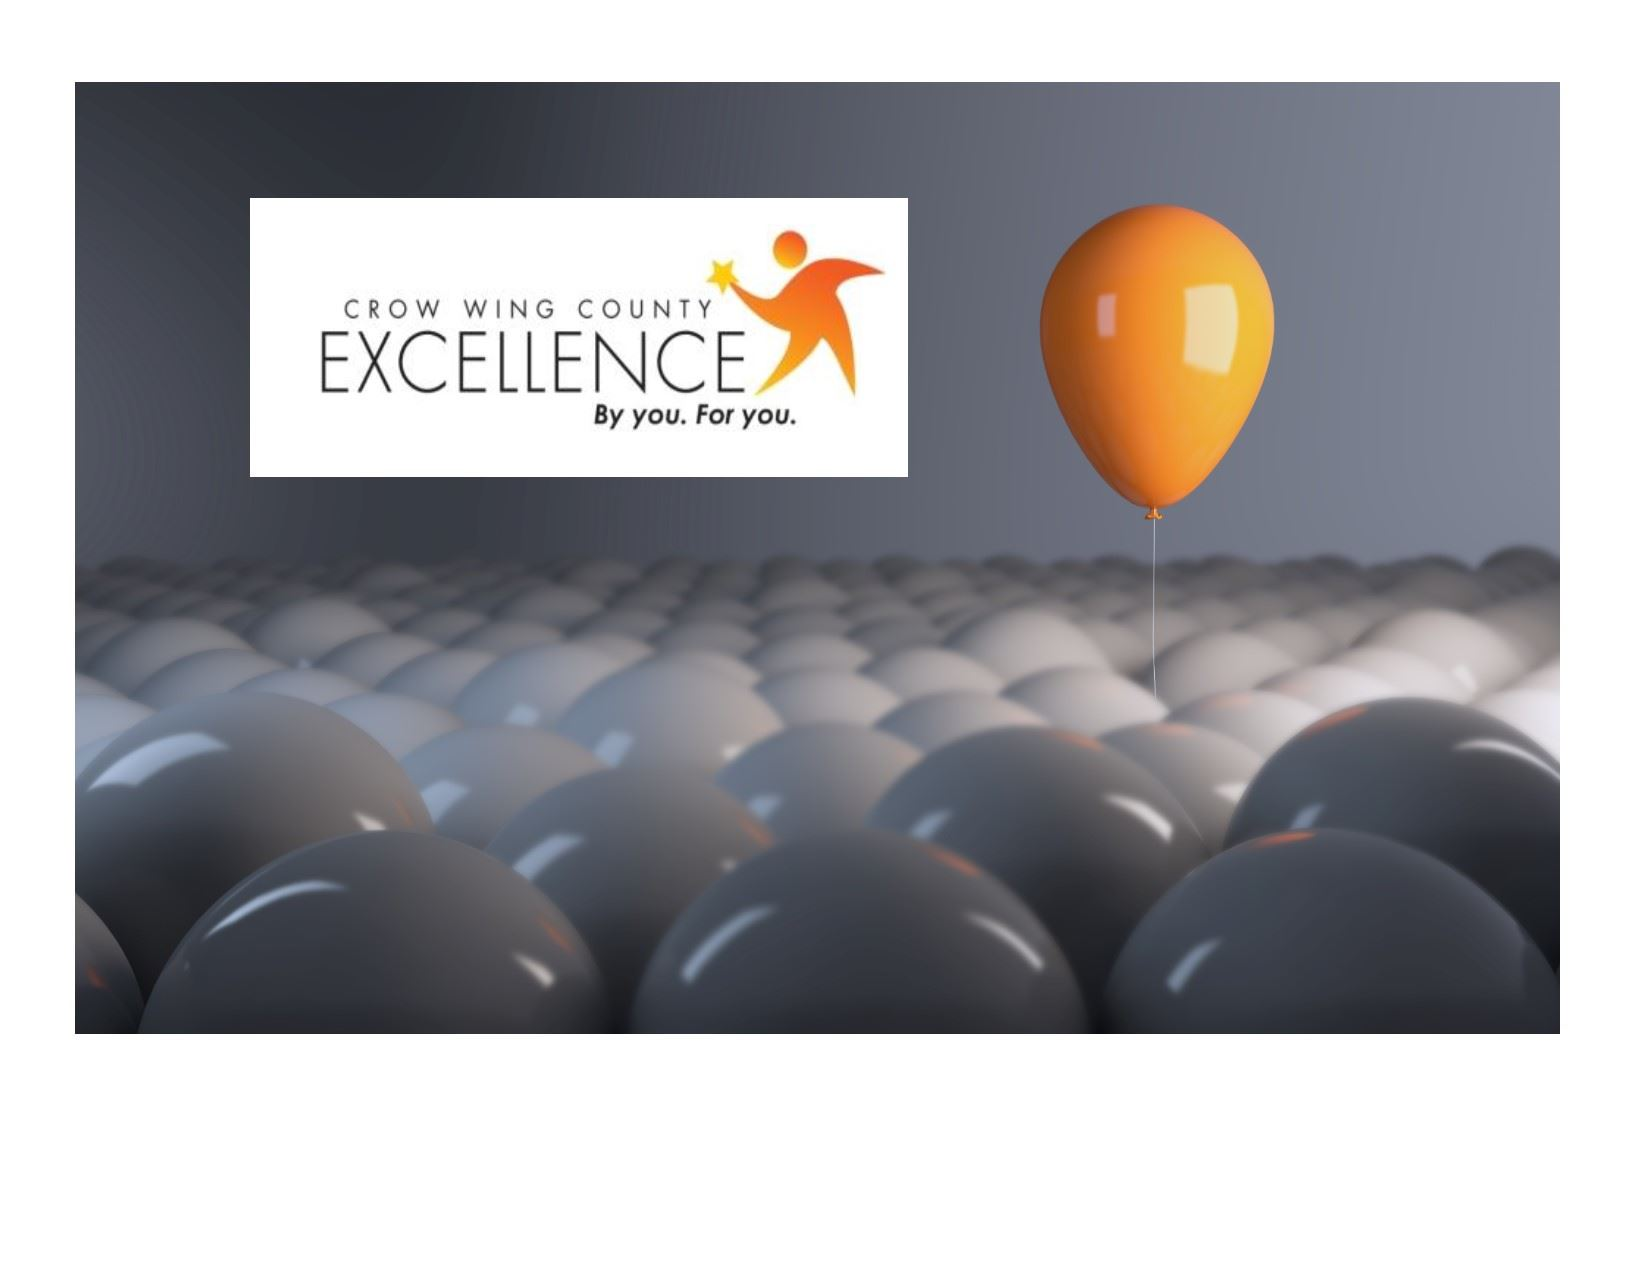 excellence awards pic for sharepoint